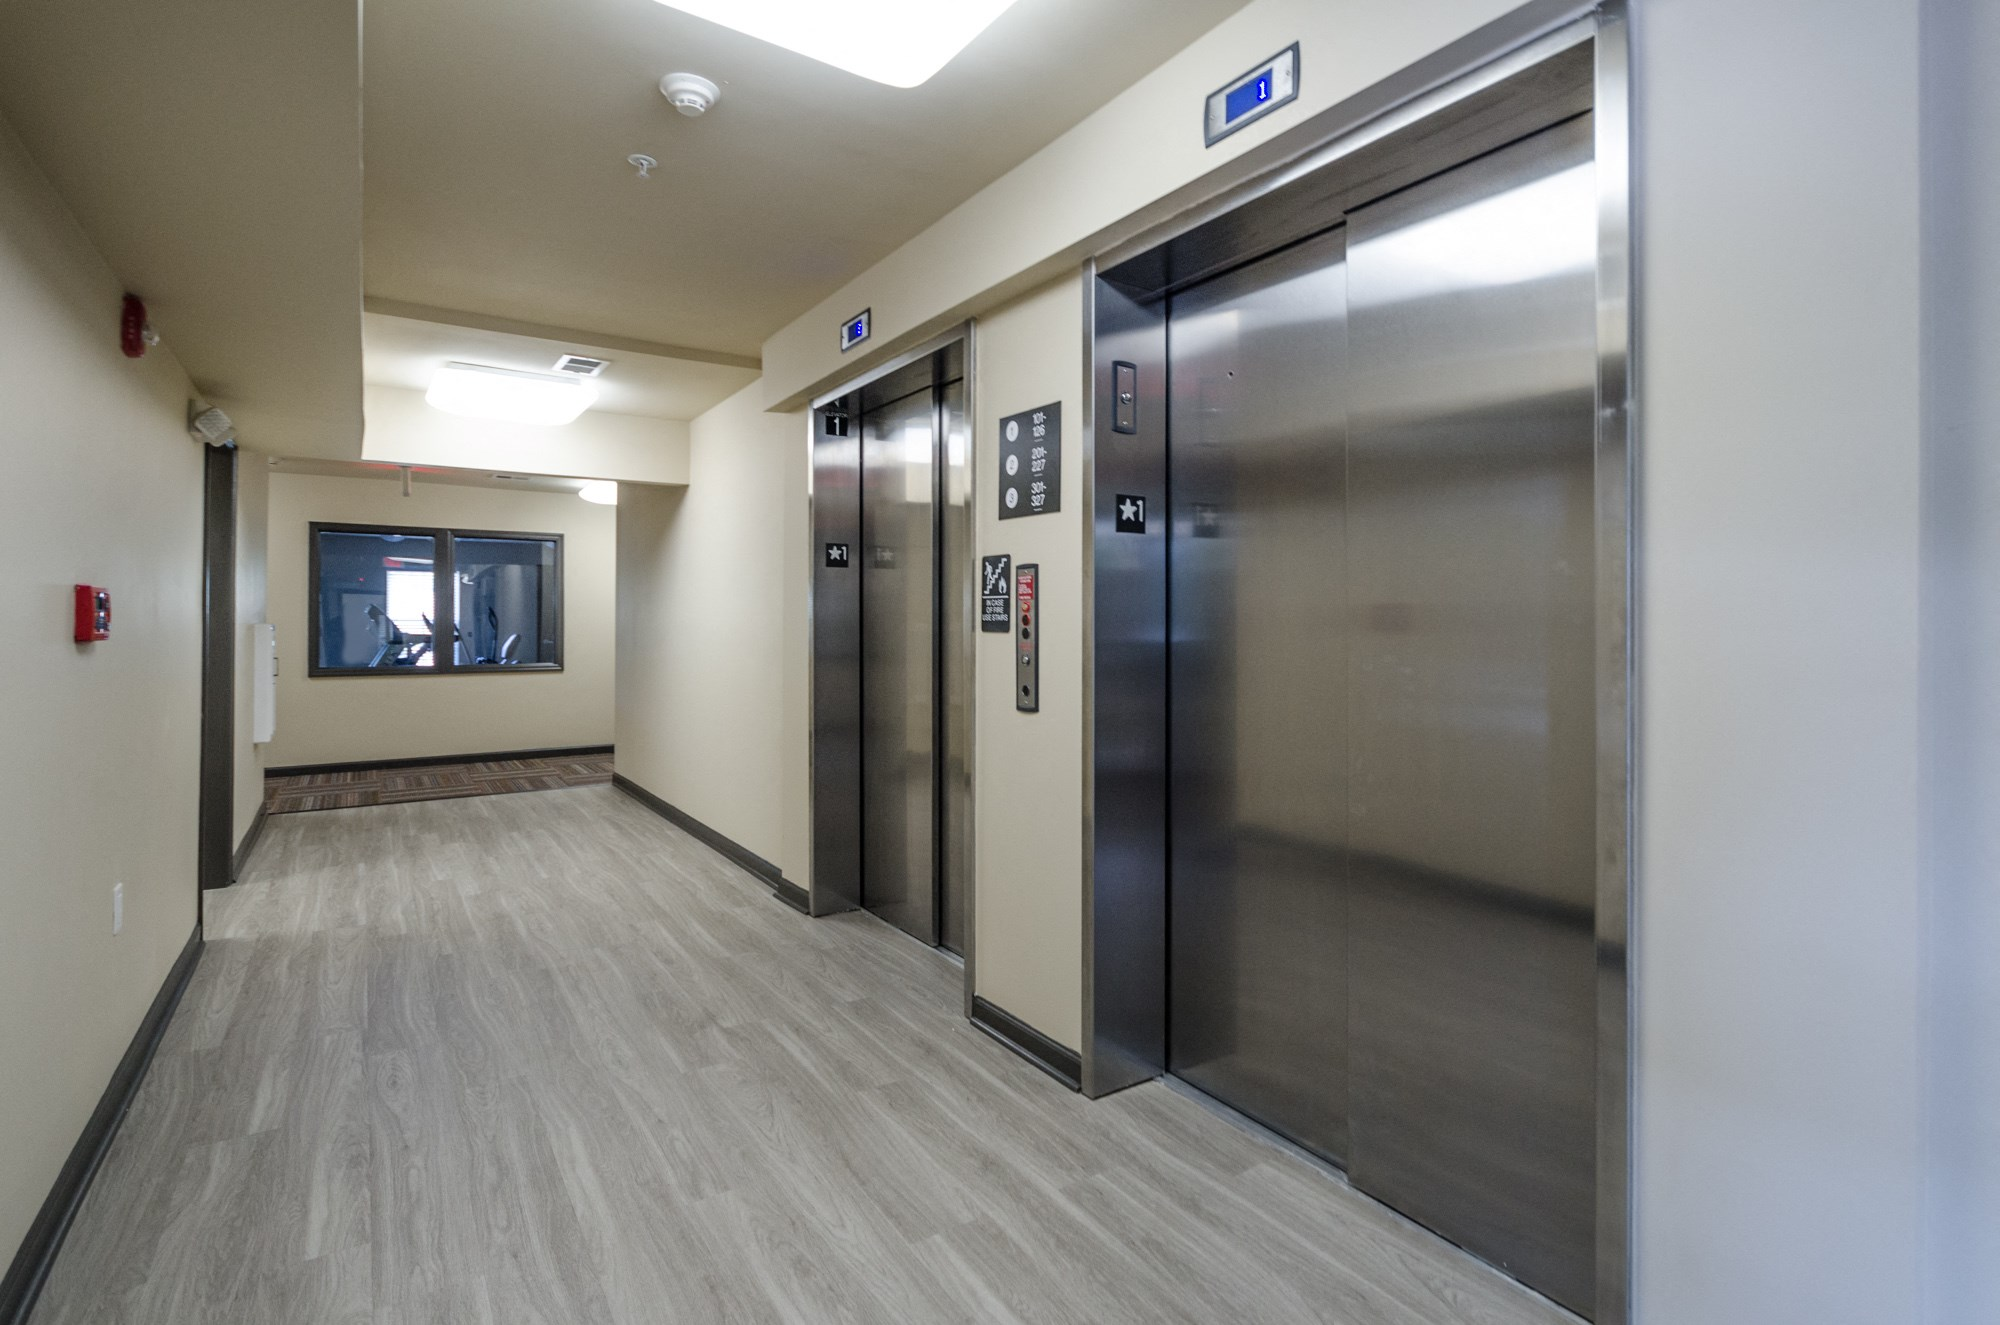 large elevator in hallway